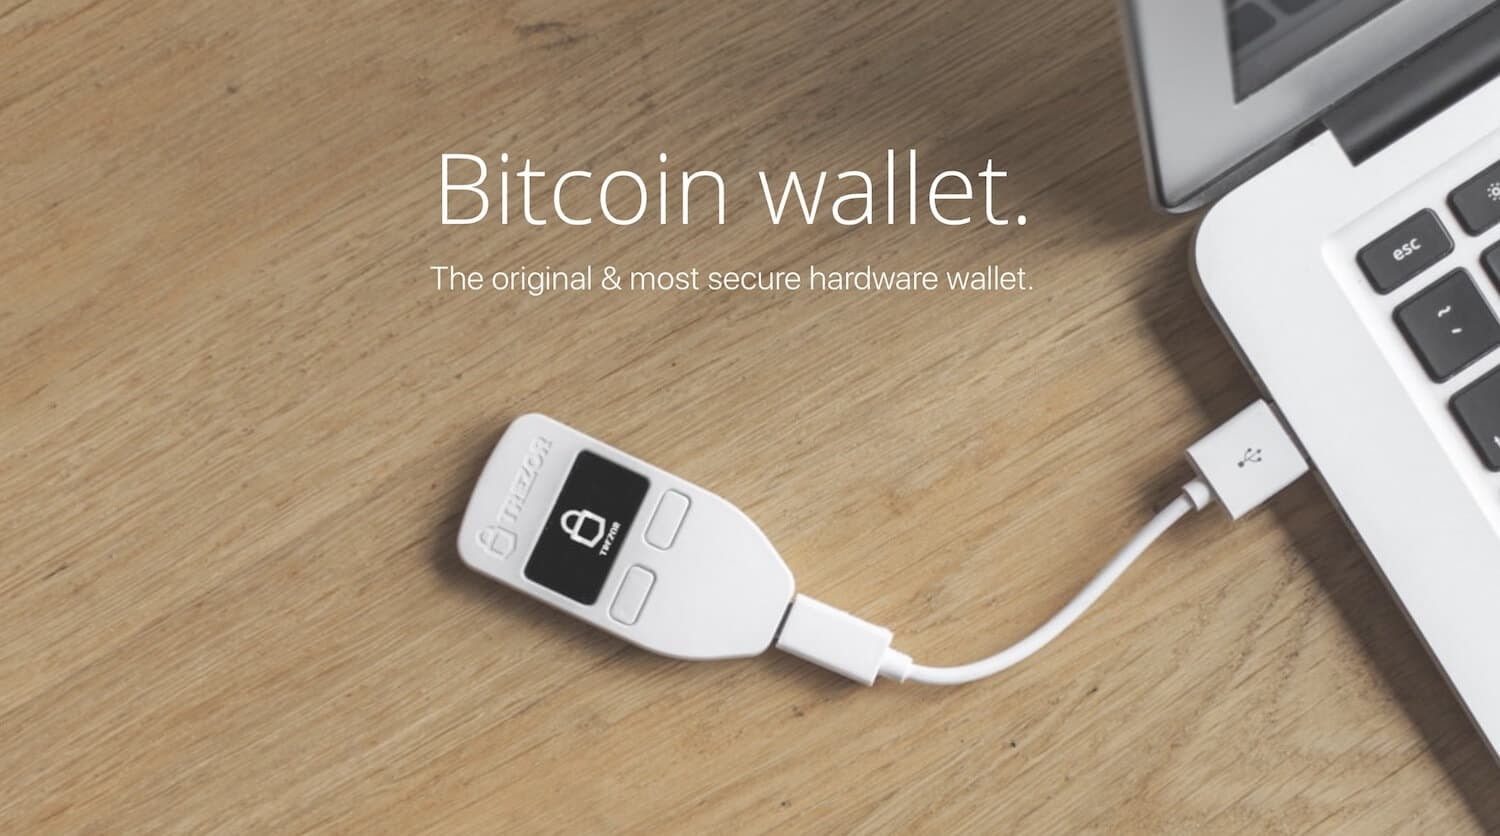 Trezor bitcoin hardware wallet